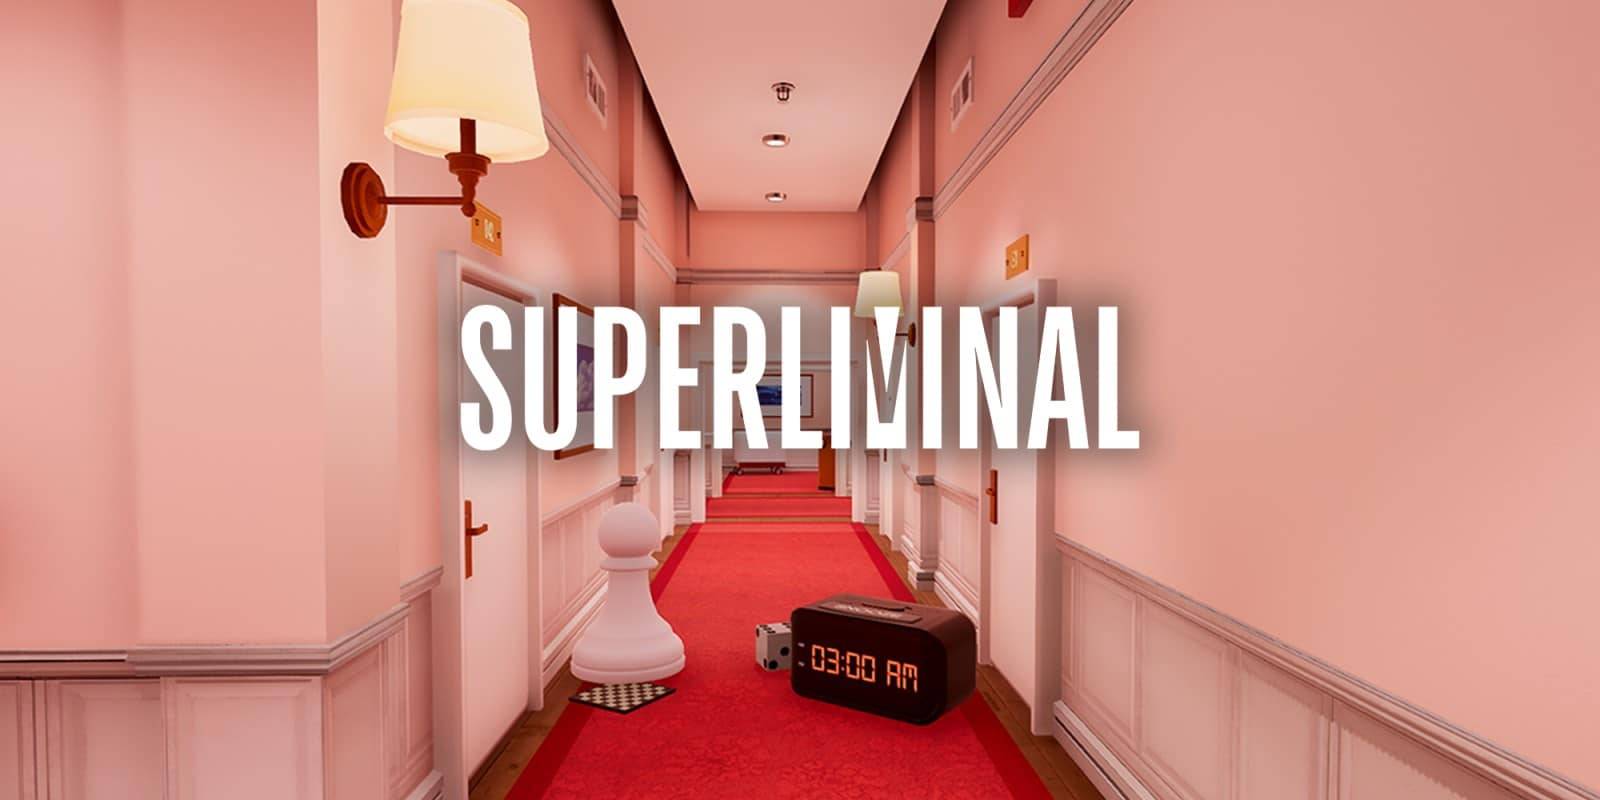 Superliminal launches July 7th